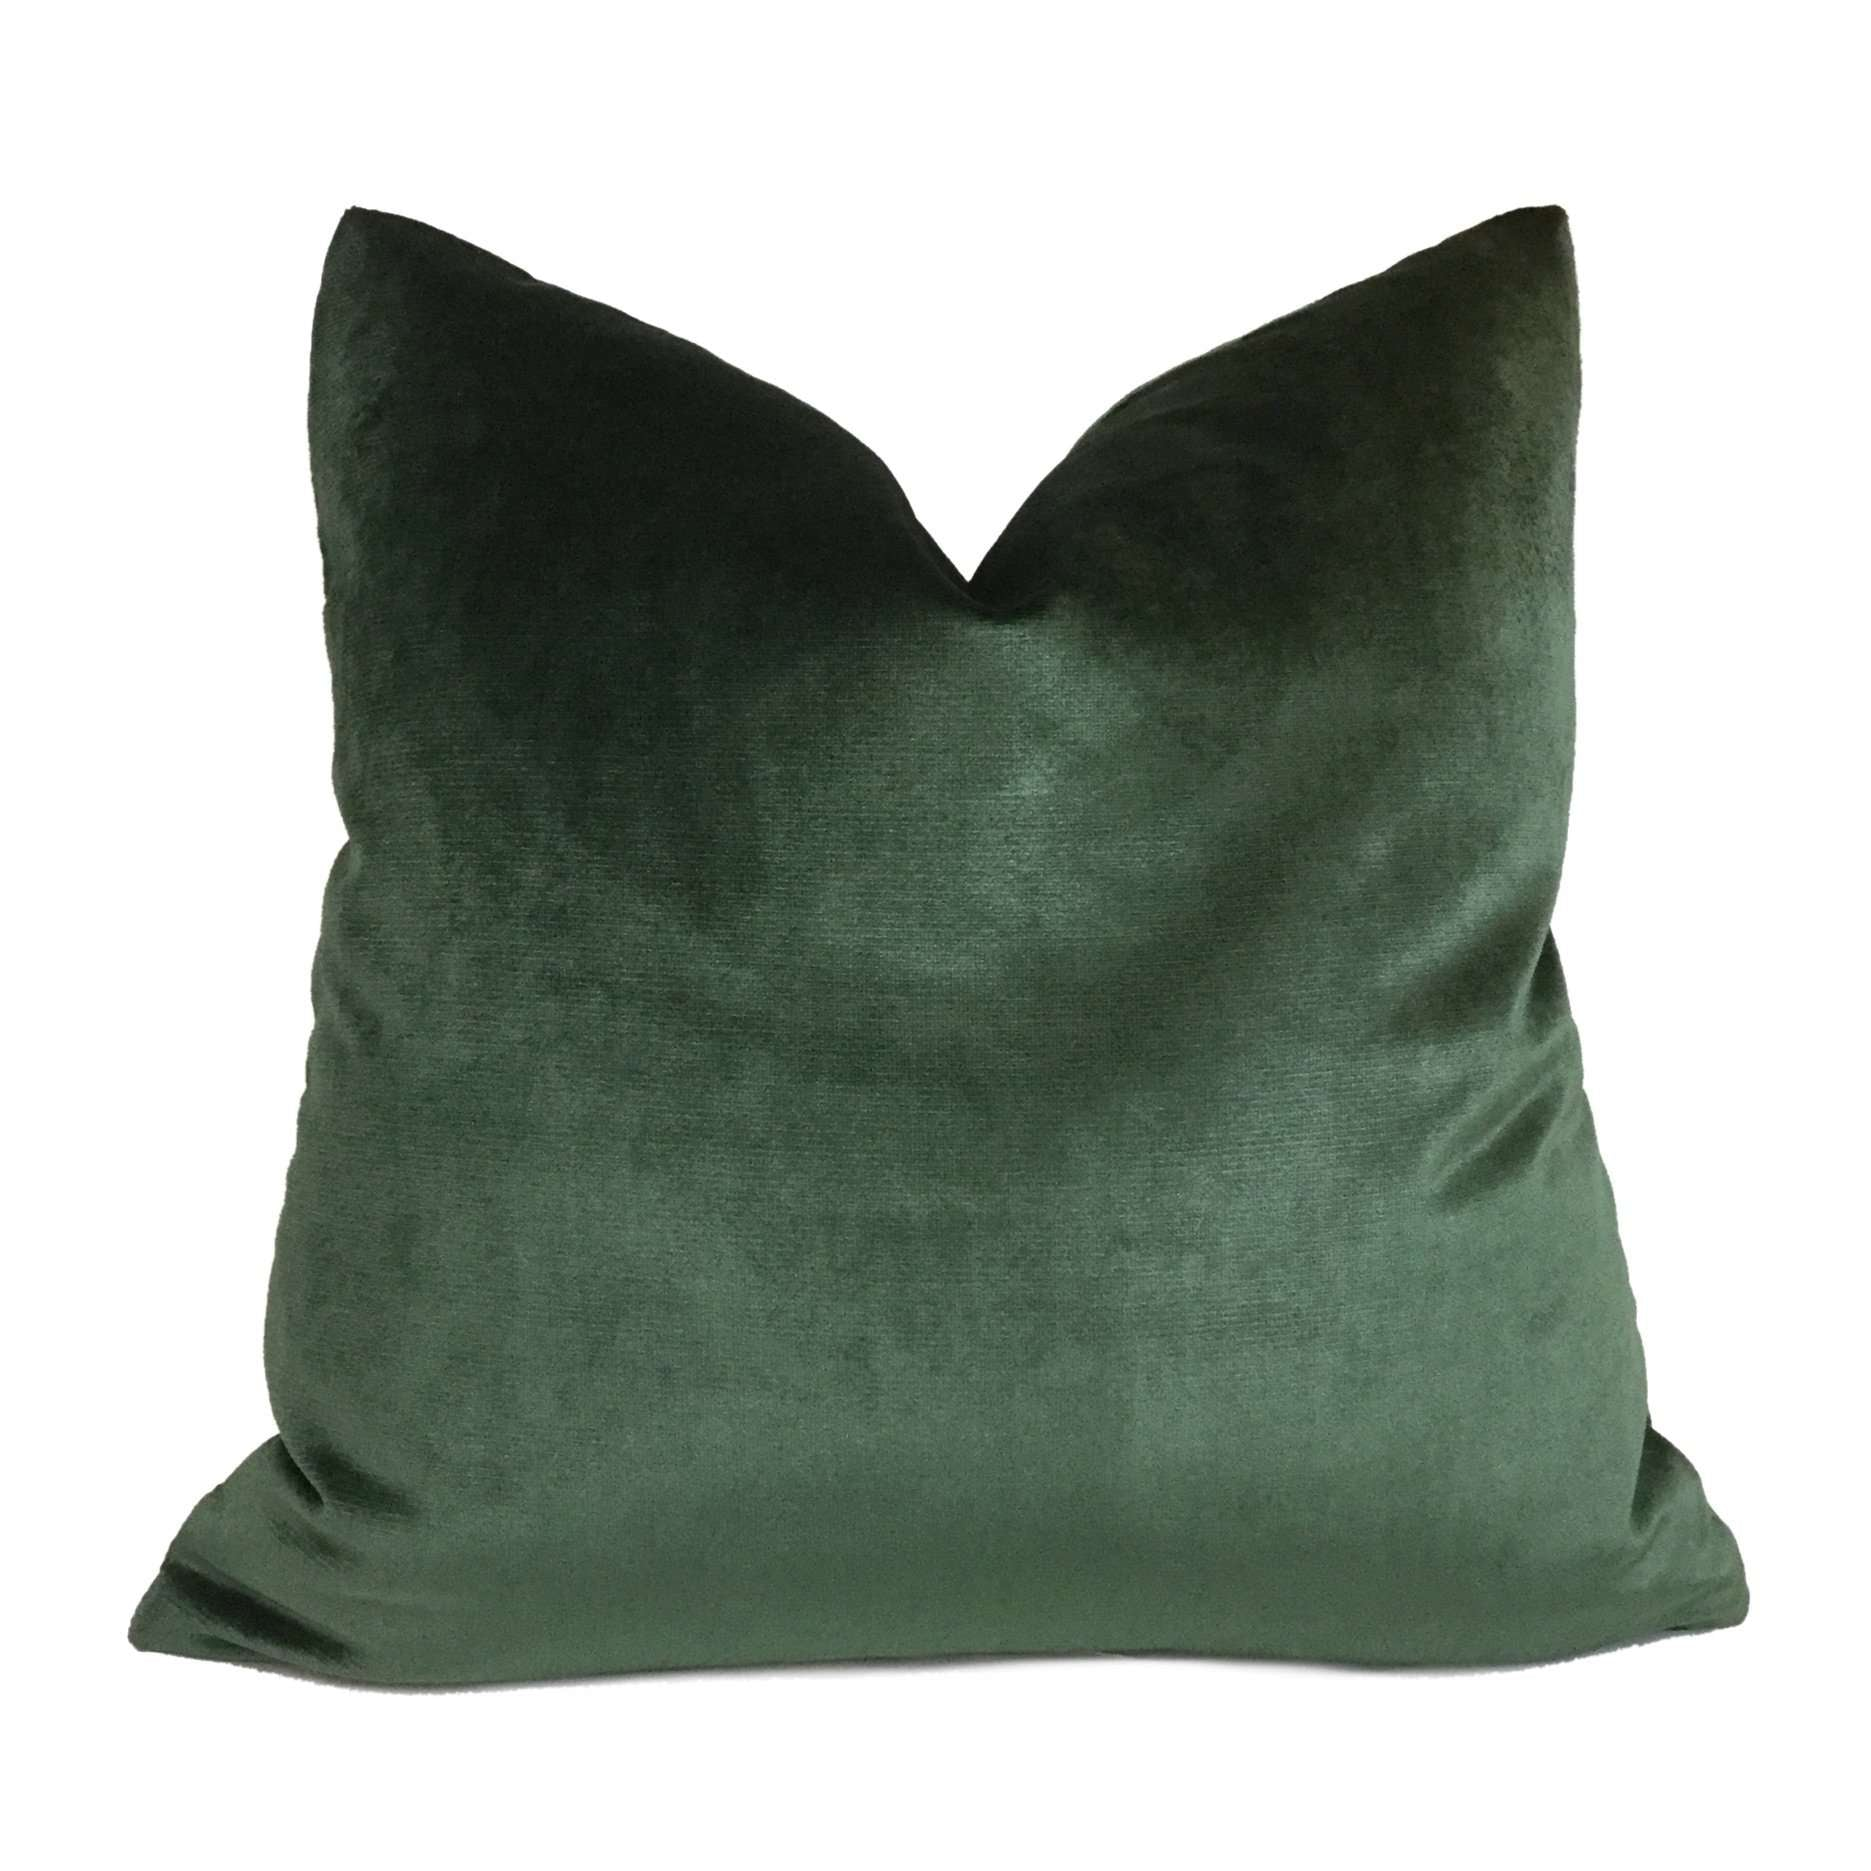 Robert Allen Forest Green Radiant Italian Rayon Velvet Pillow Cover Cushion Pillow Case Euro Sham 16x16 18x18 20x20 22x22 24x24 26x26 28x28 Lumbar Pillow 12x18 12x20 12x24 14x20 16x26 by Aloriam